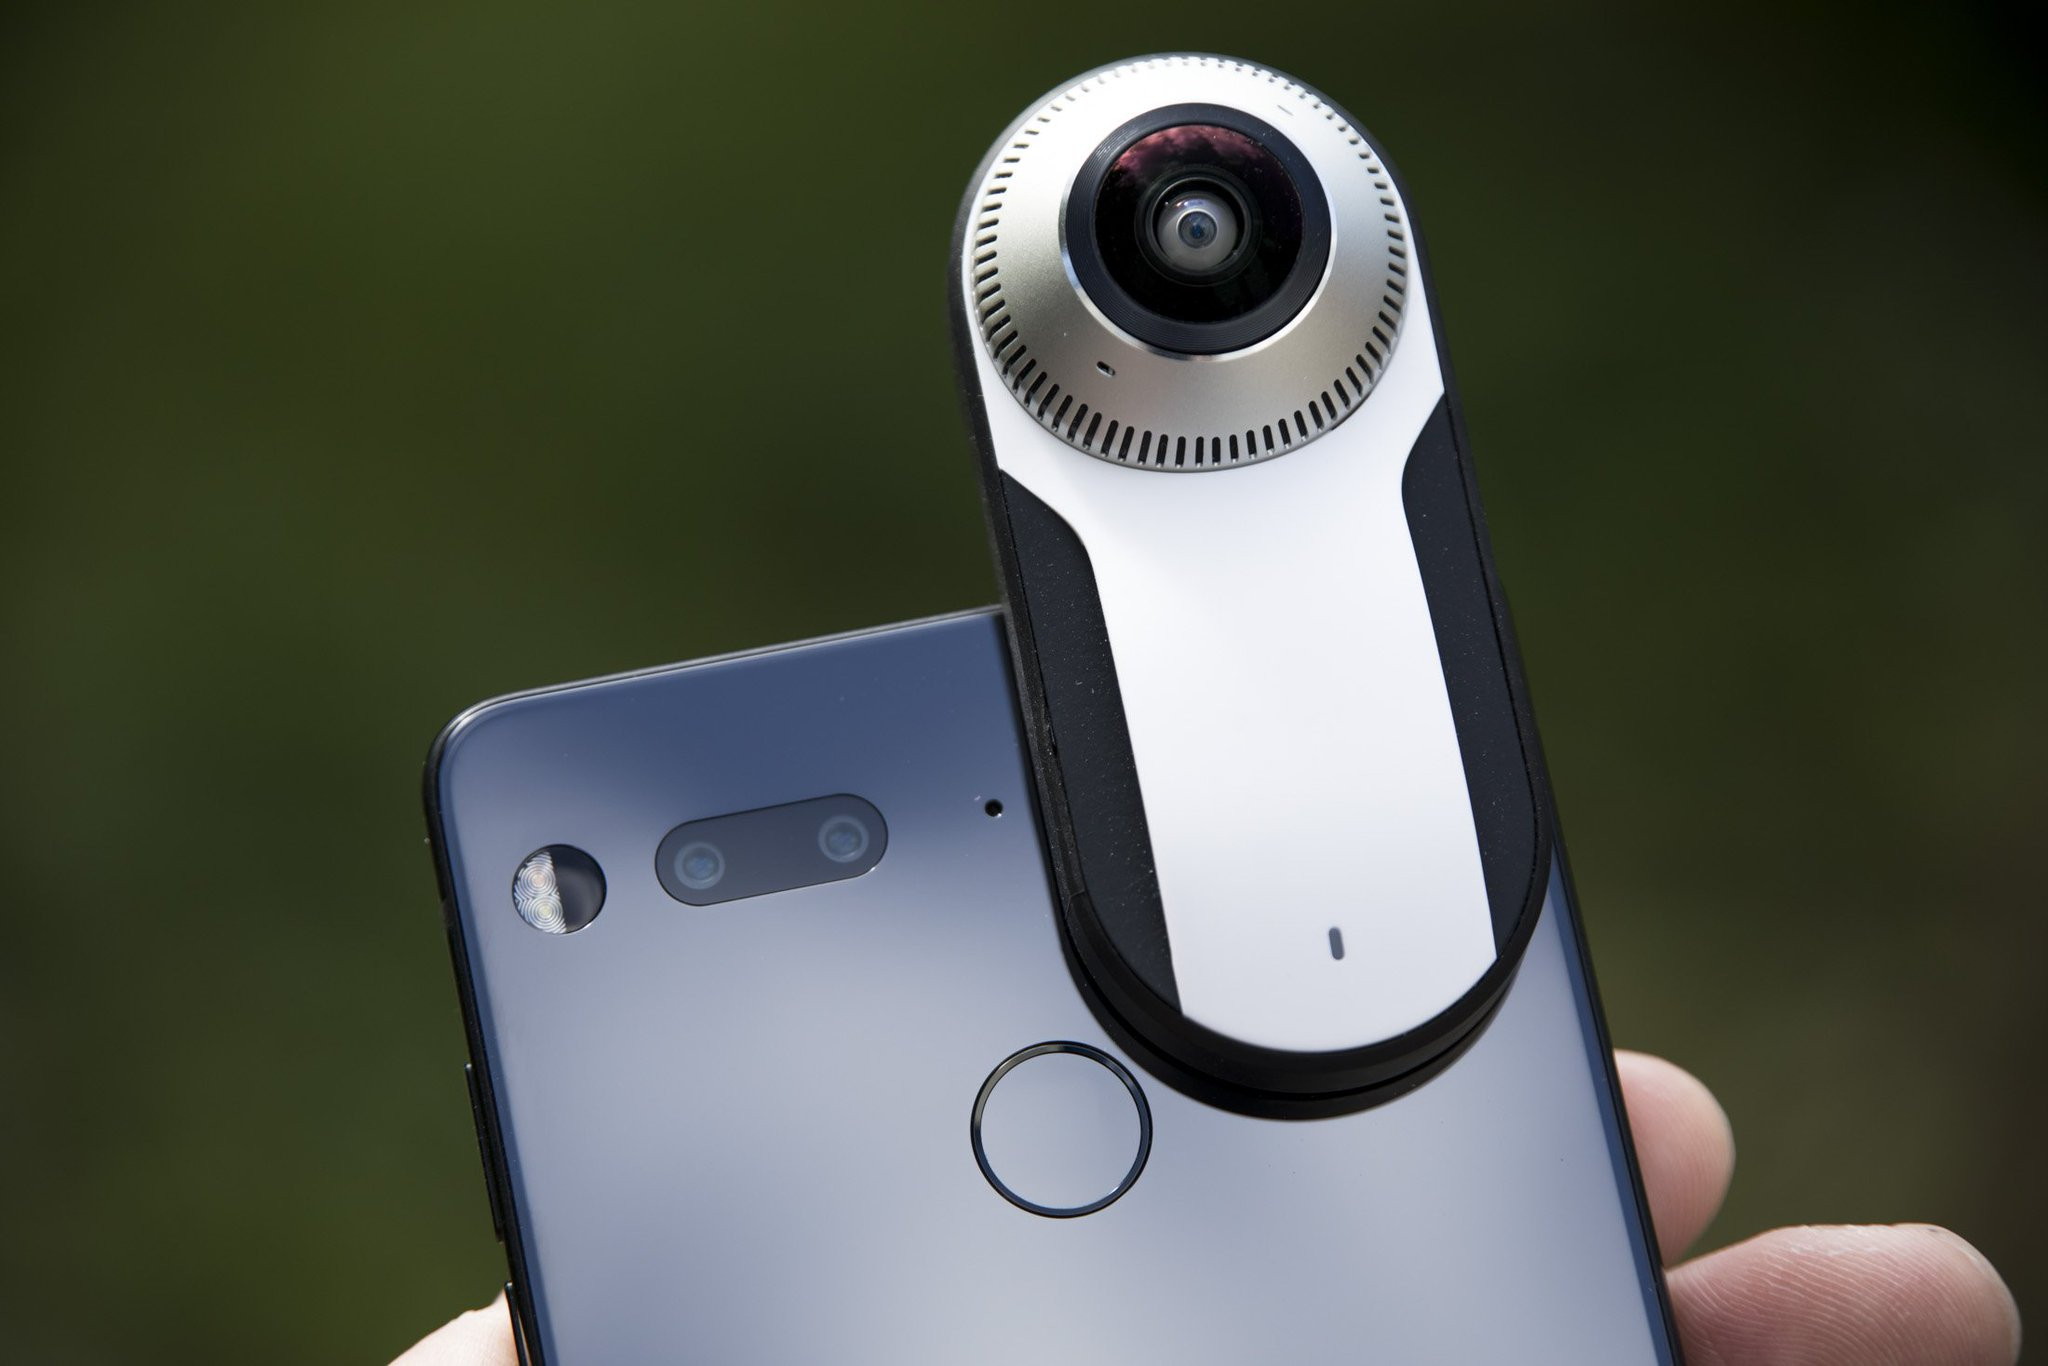 Essential Phone can now stream live to Facebook from the 360 camera add-on https://t.co/td7avK8WG8 by @etherington https://t.co/7BWNTD4giM